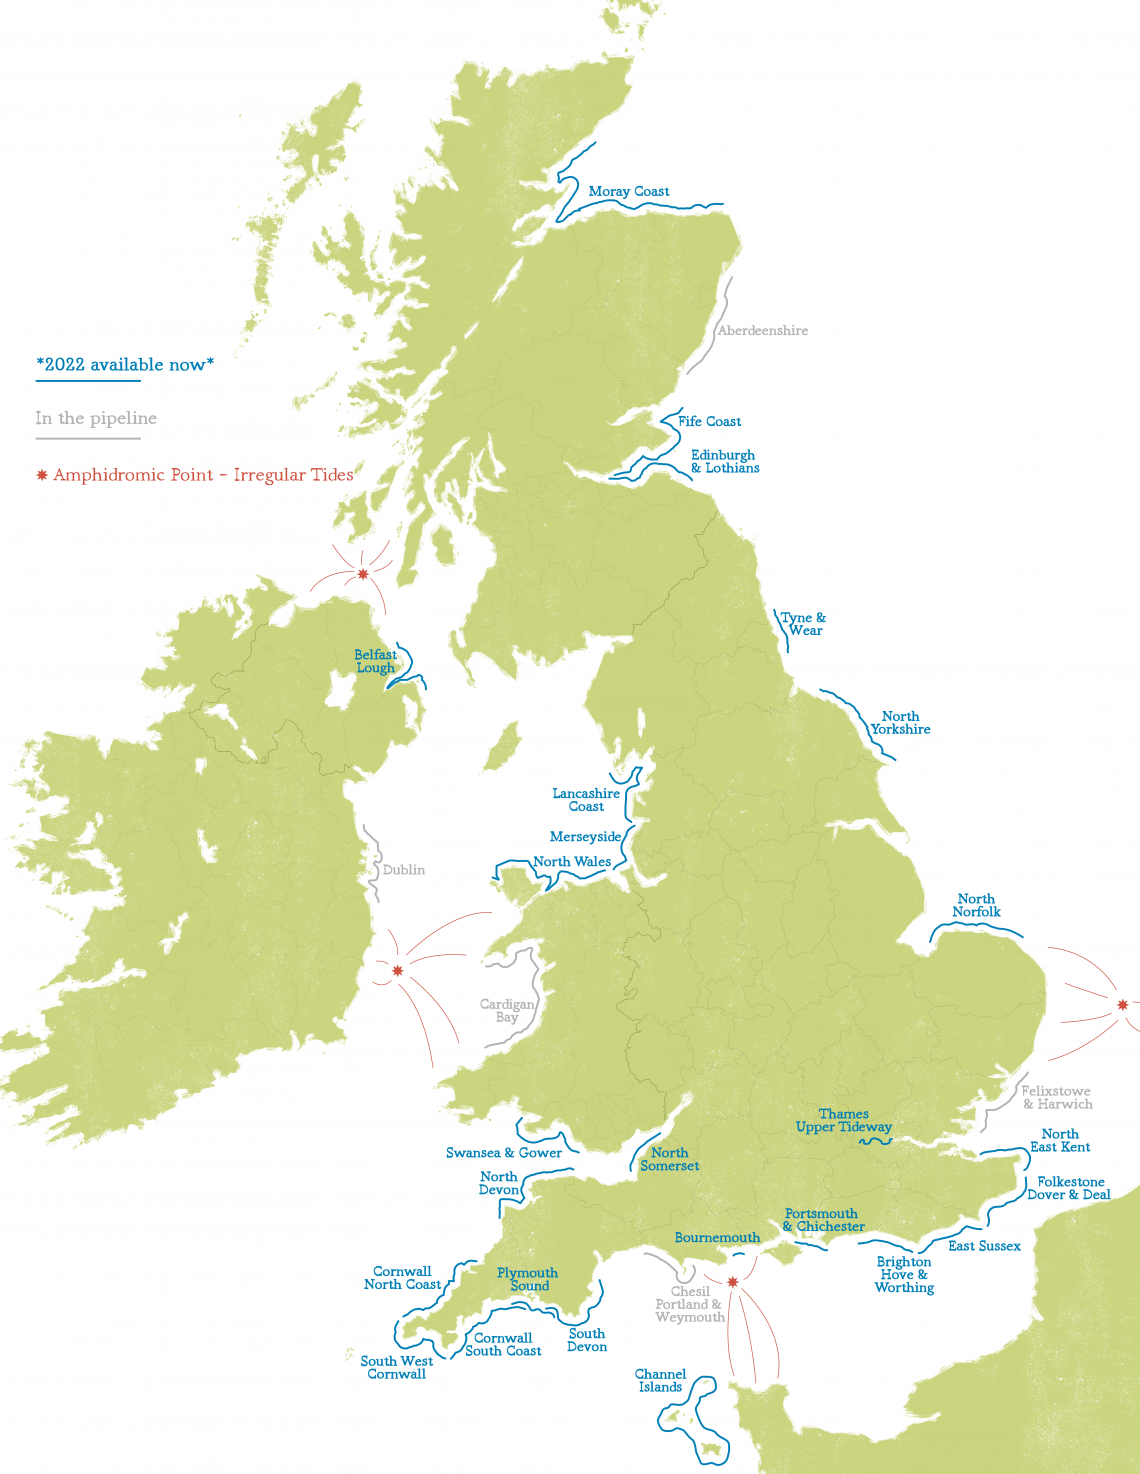 Map of tide chart locations